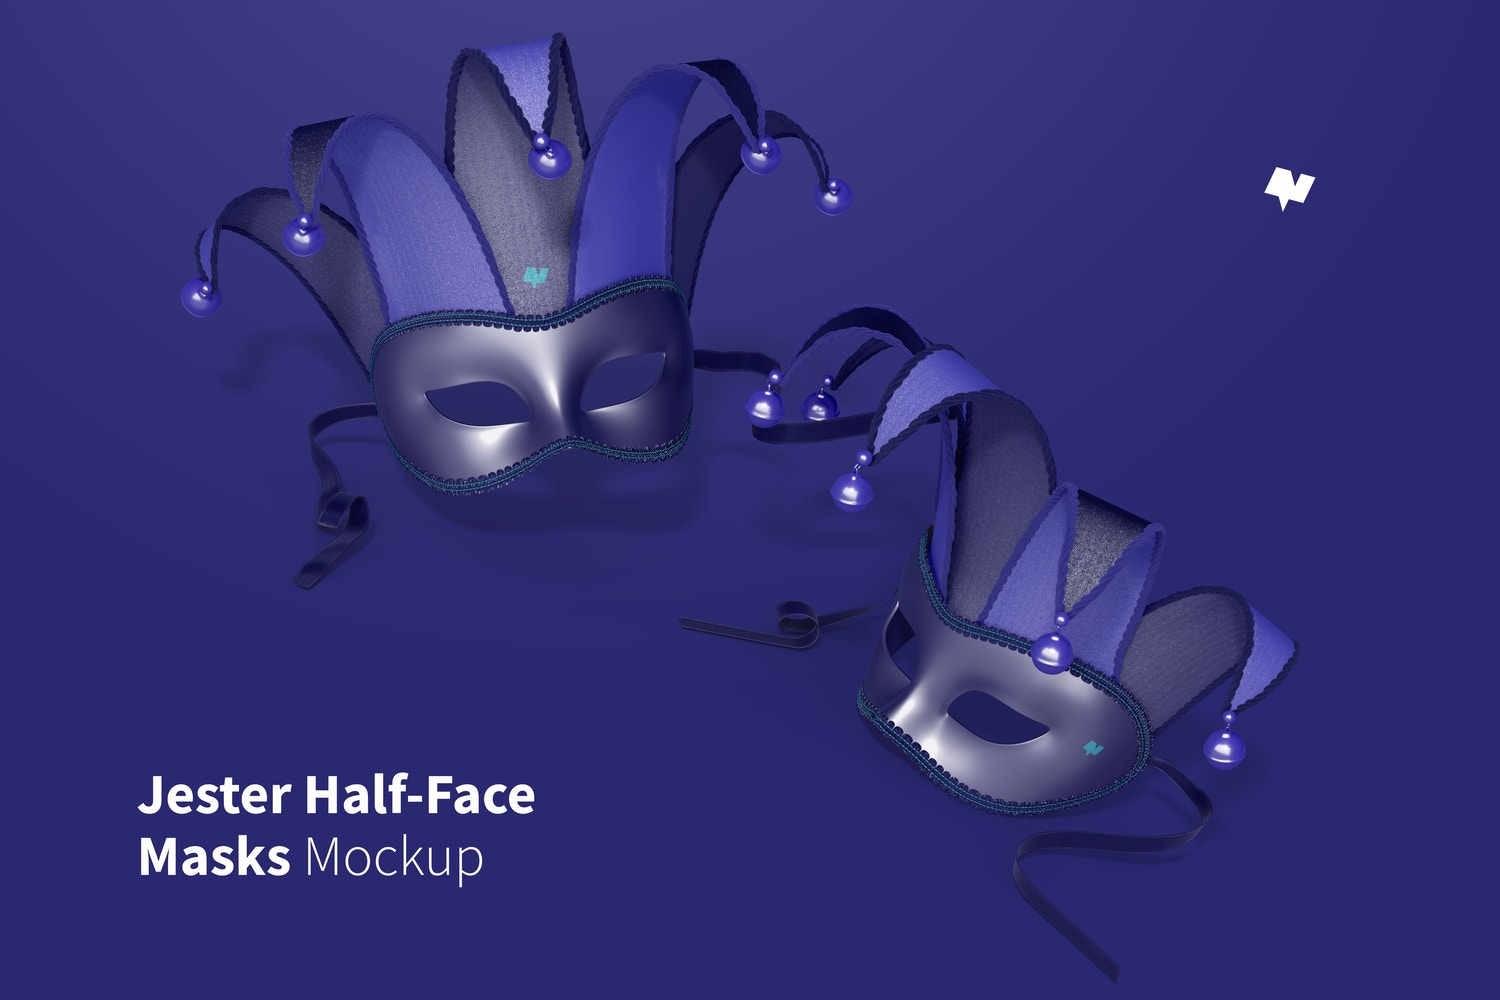 Jester Half-Face Masks Mockup, Right View